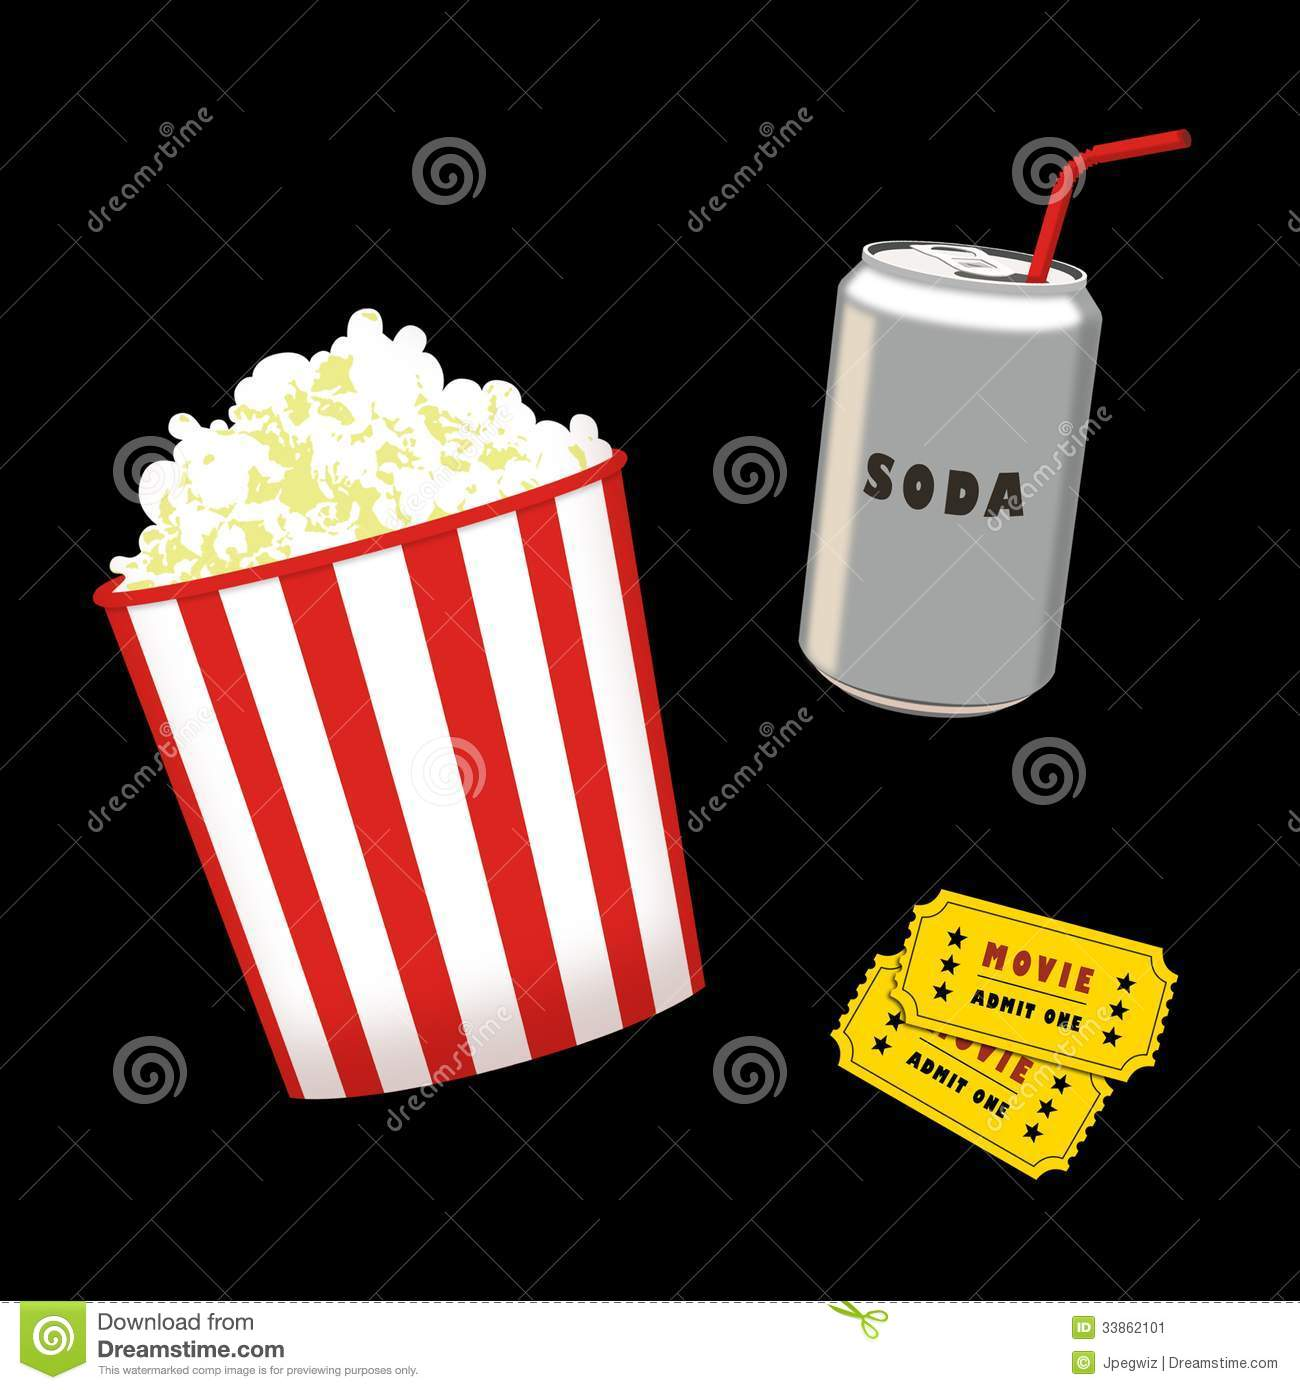 Popcorn And Soda Stock Image - Image: 33862101